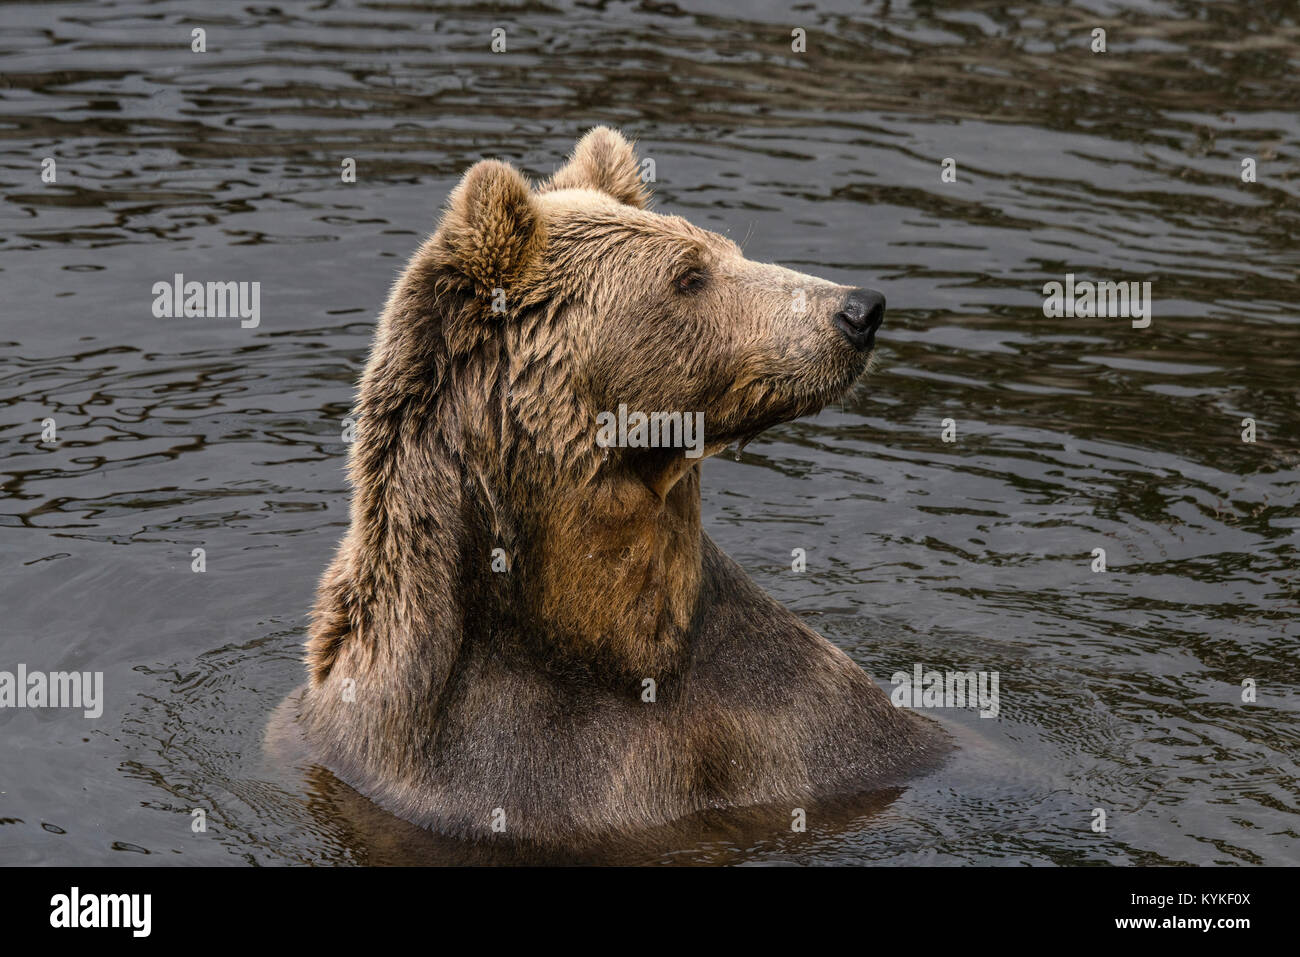 Bear in a lake with wet fur in the dark water looking for fish - Stock Image